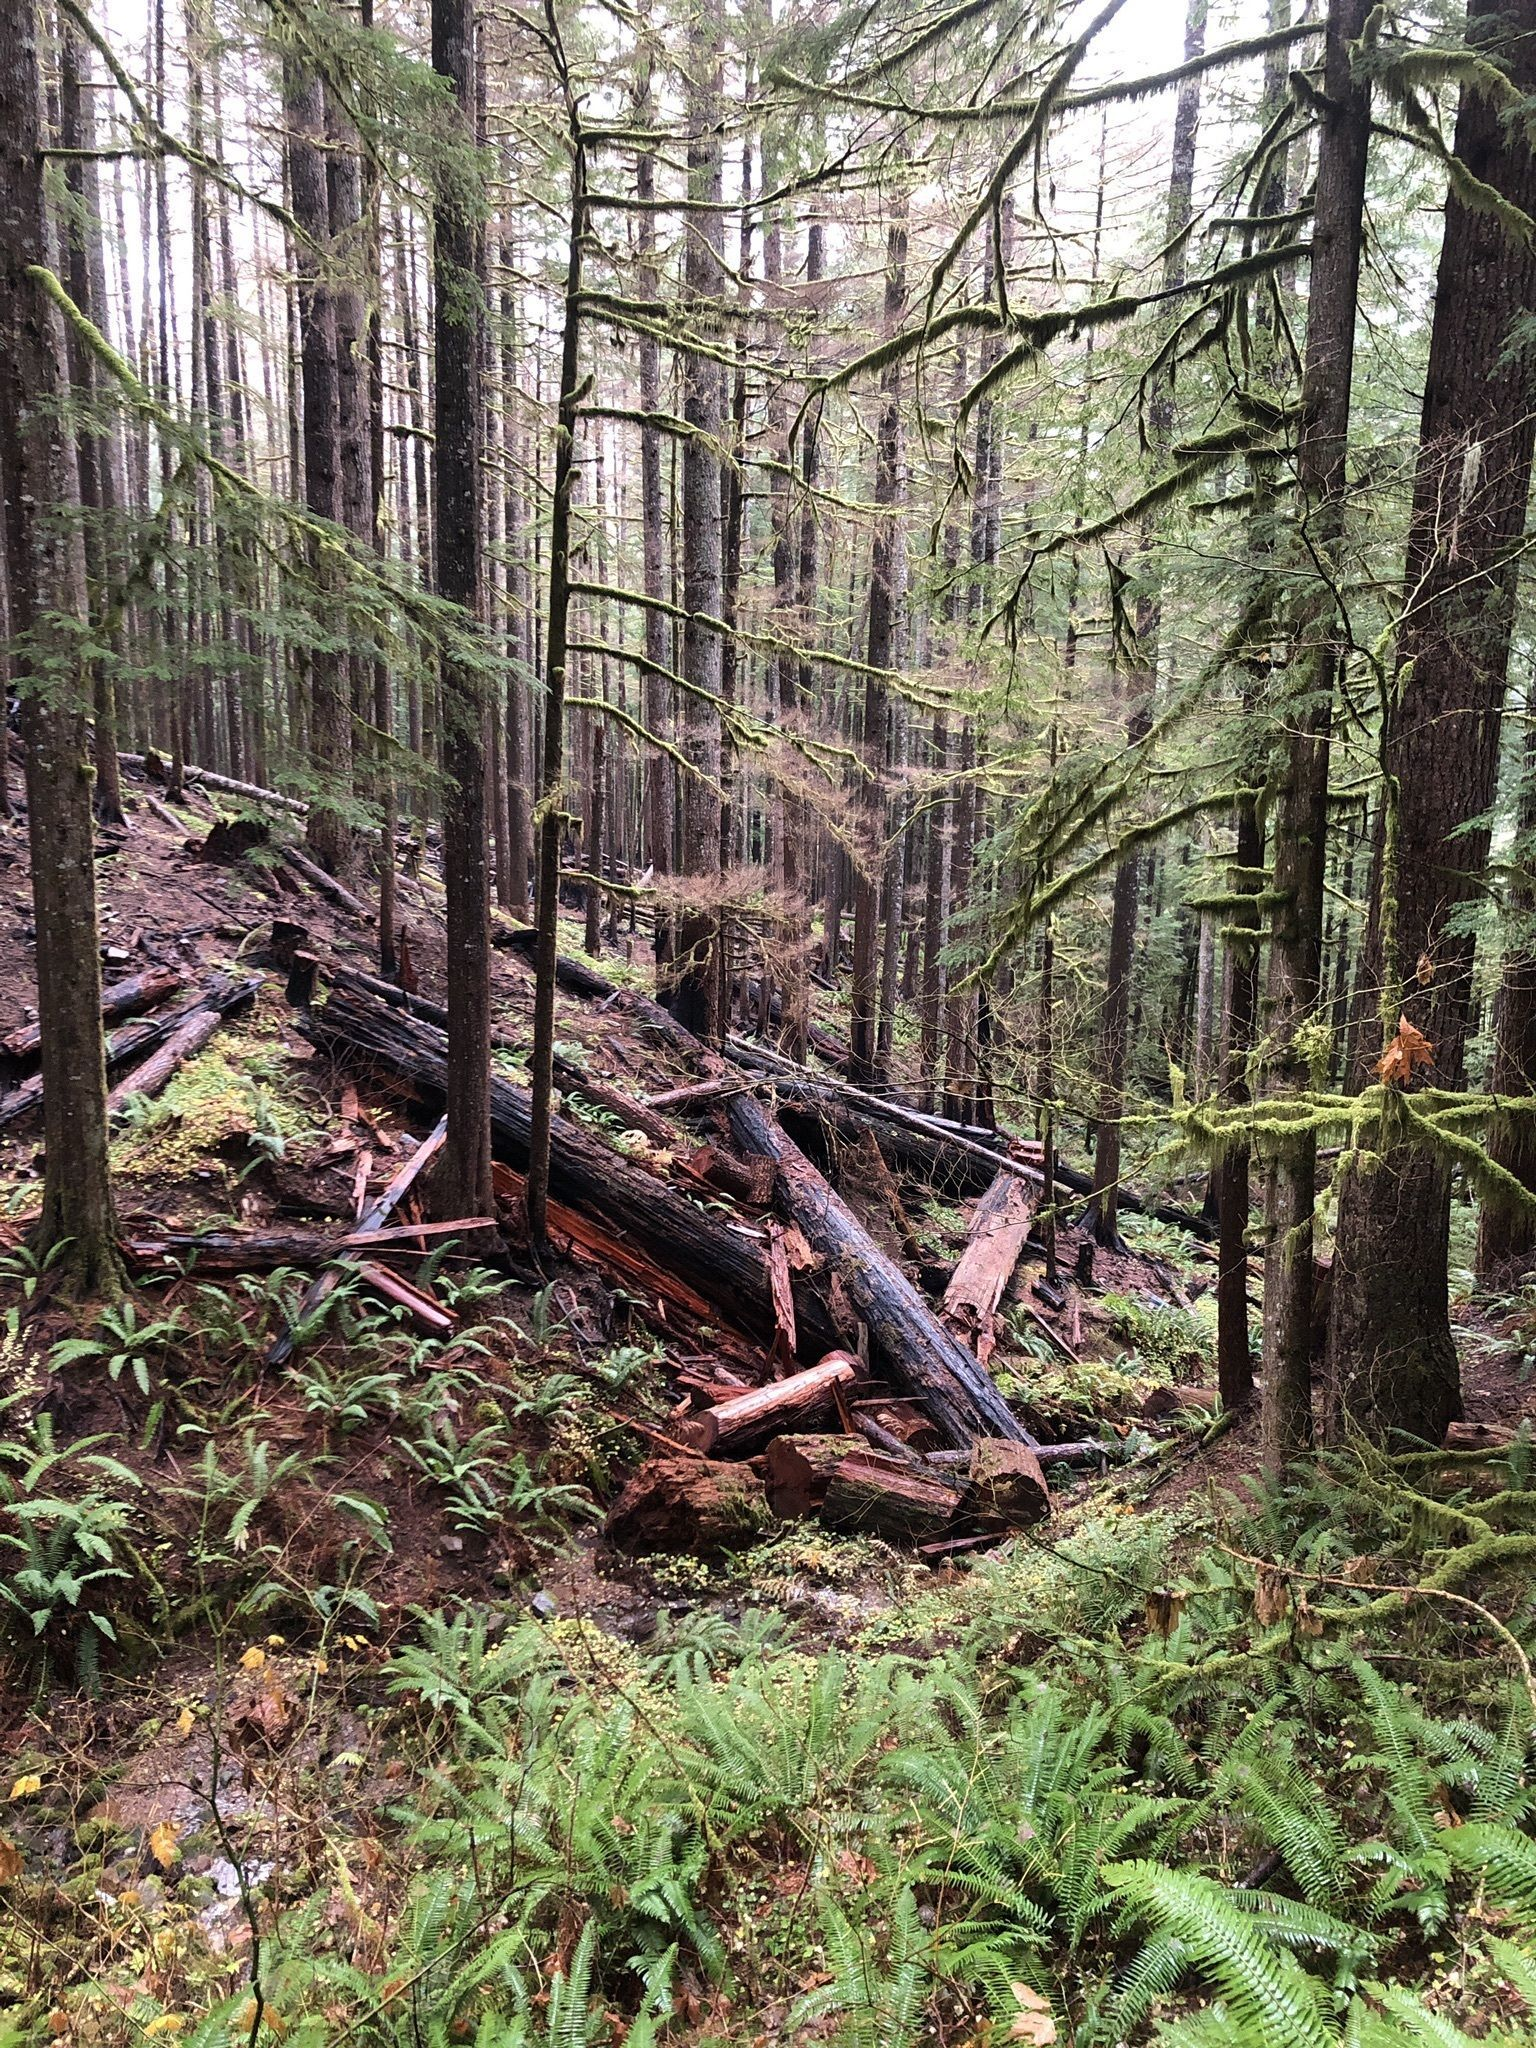 Best Camping Trails in Gifford Pinchot National Forest